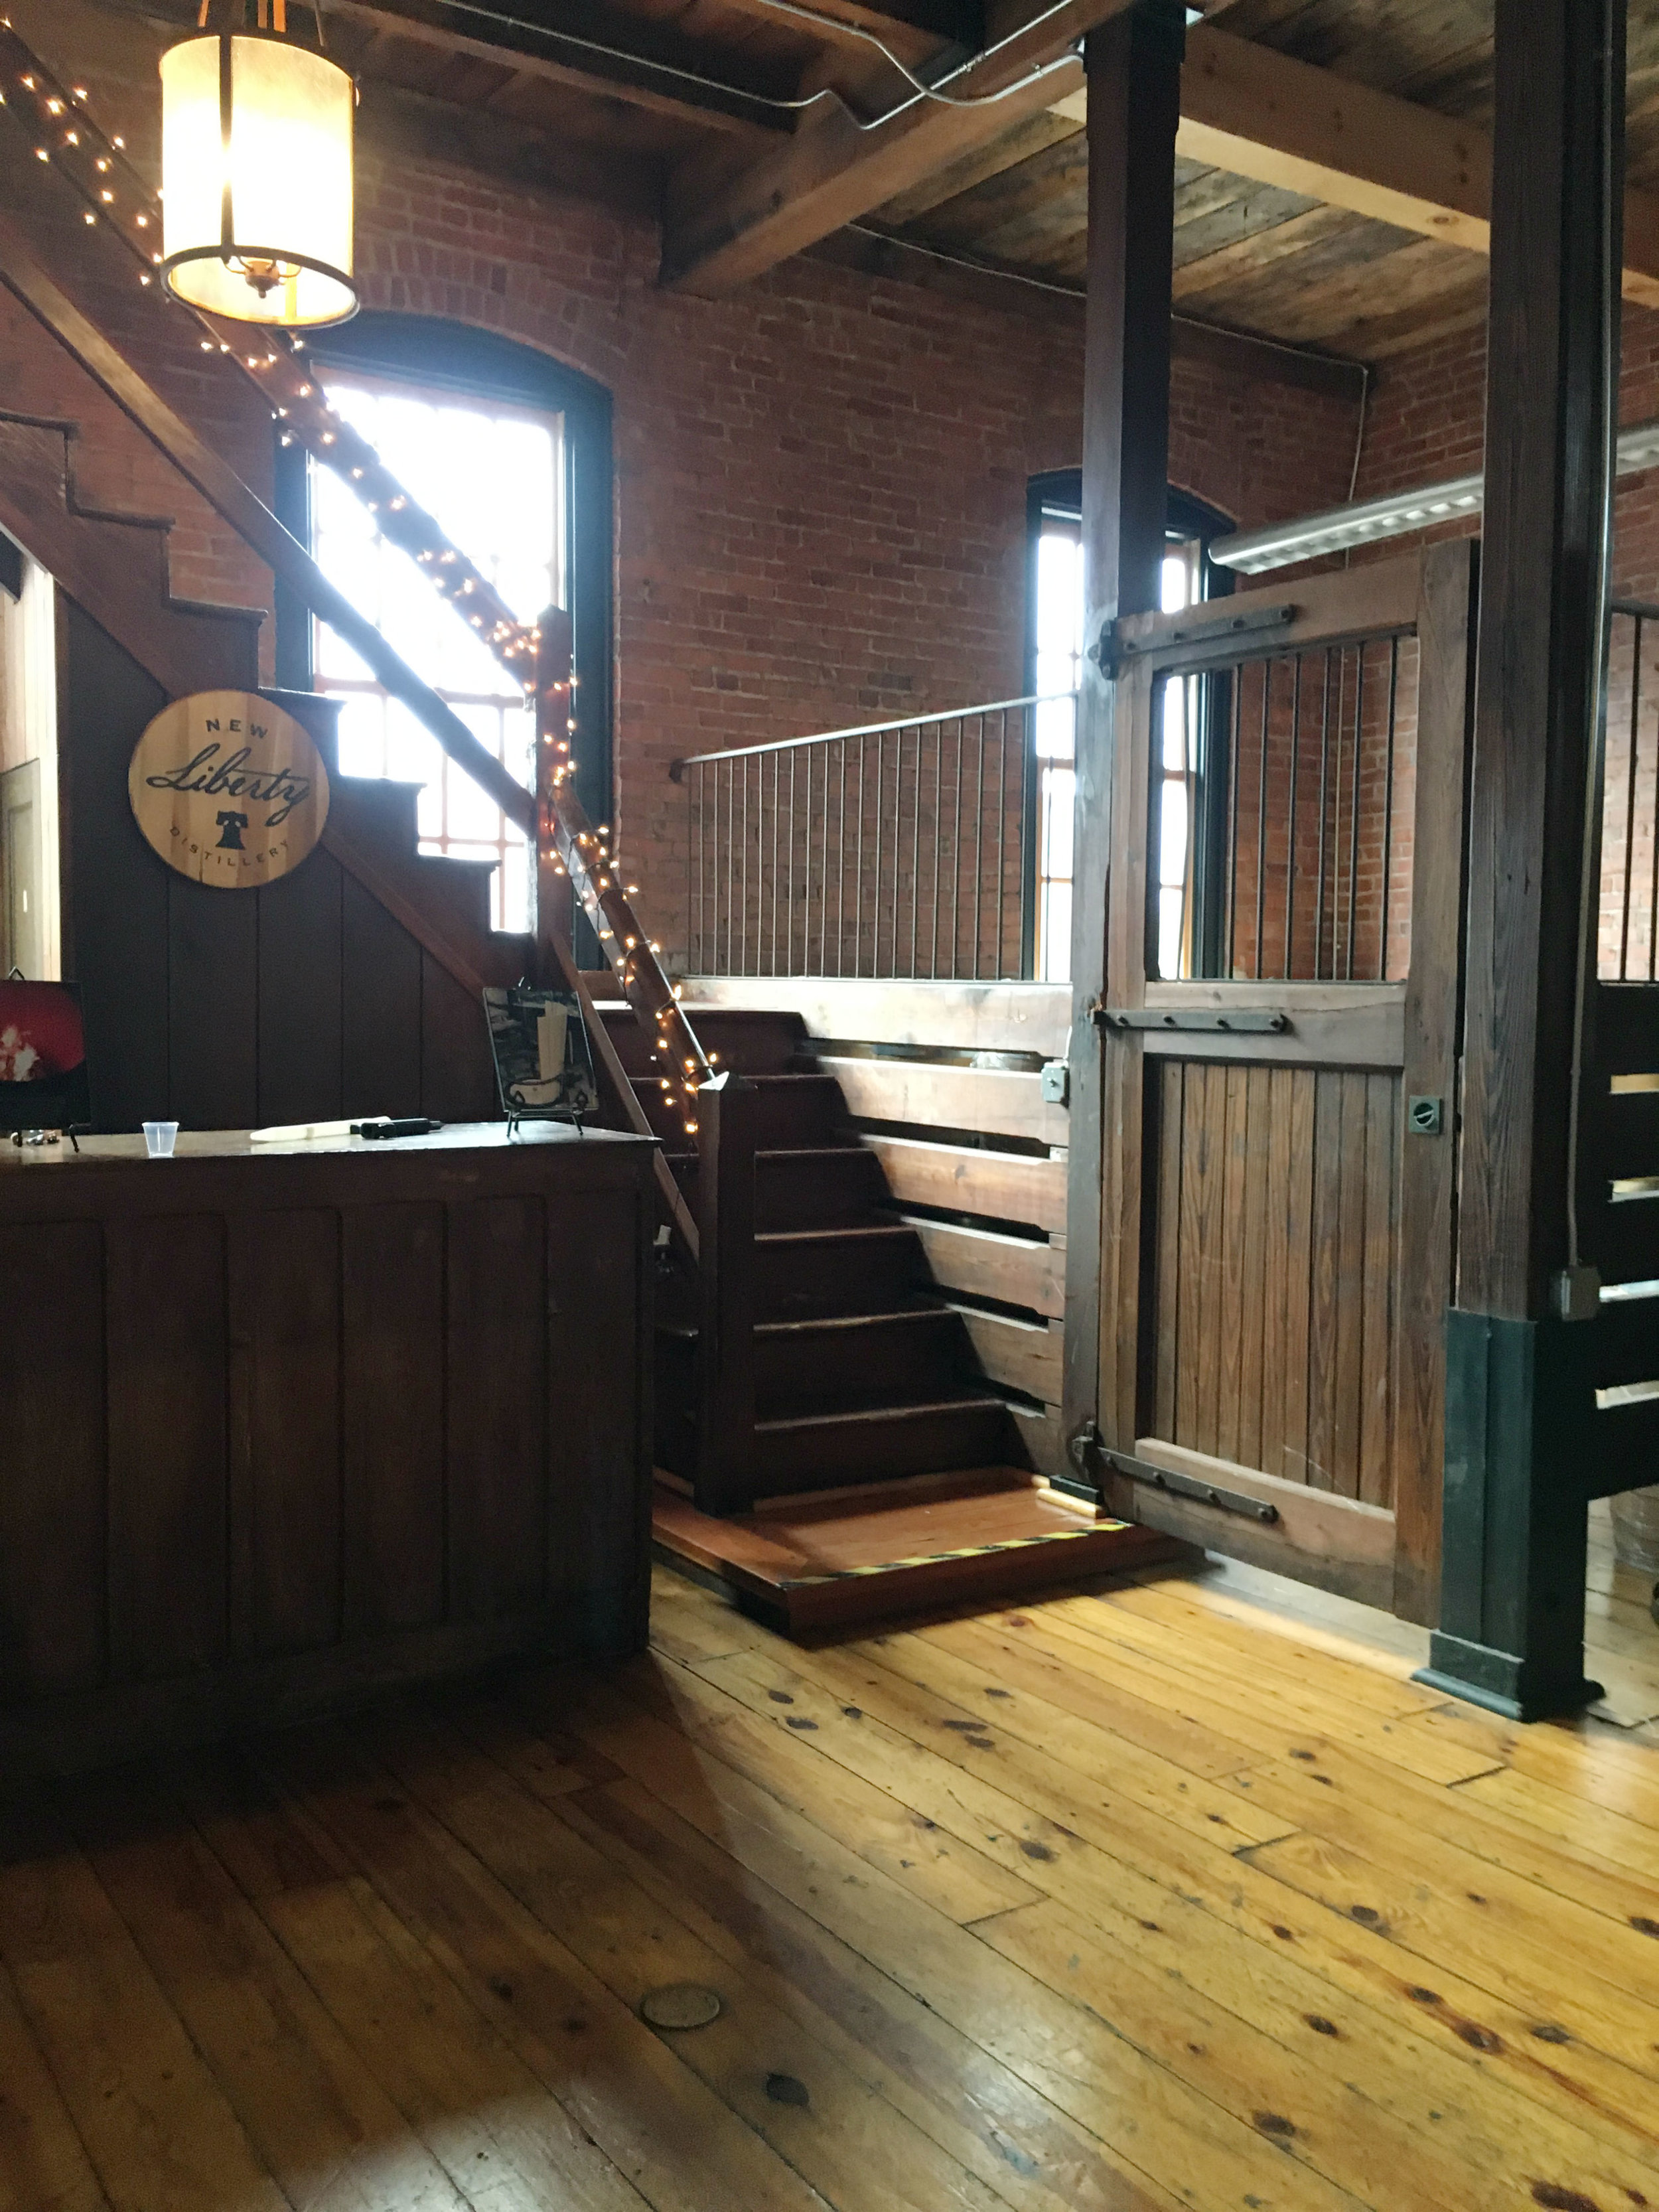 Quick Philly Trip: New Liberty Distillery